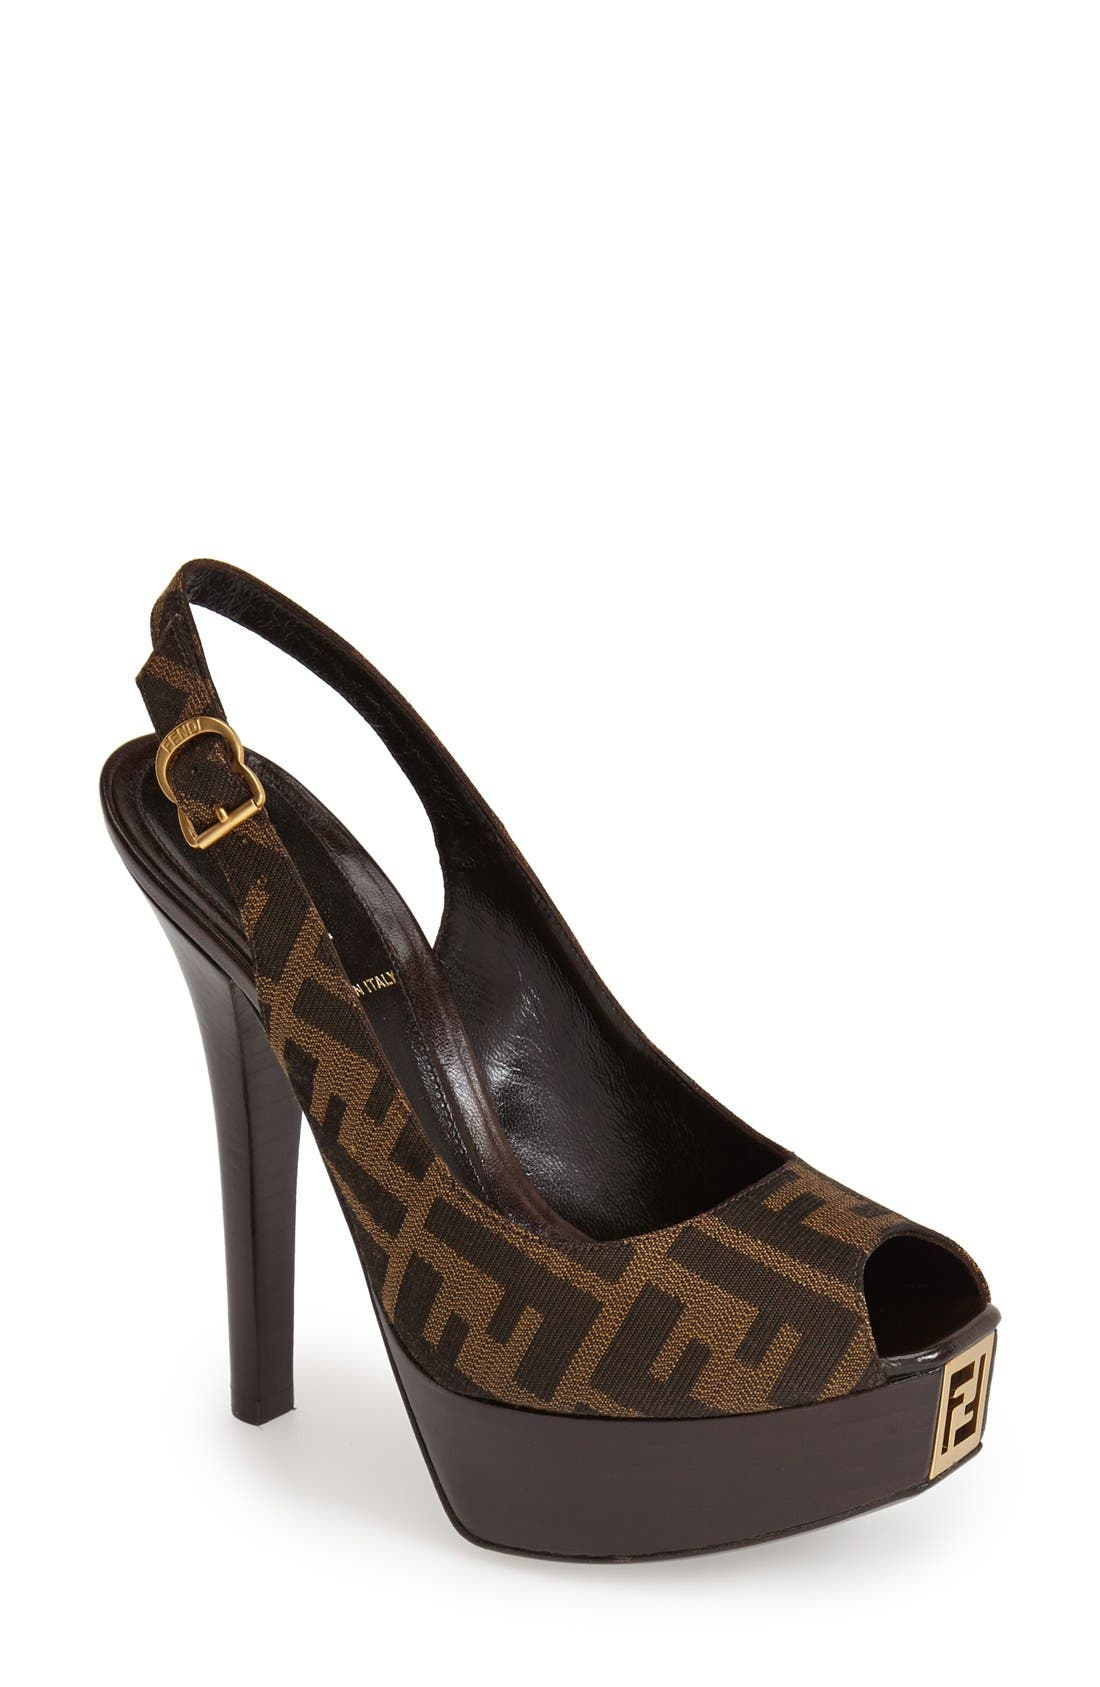 Alternate Image 1 Selected - Fendi 'The Fendista' Platform Pump